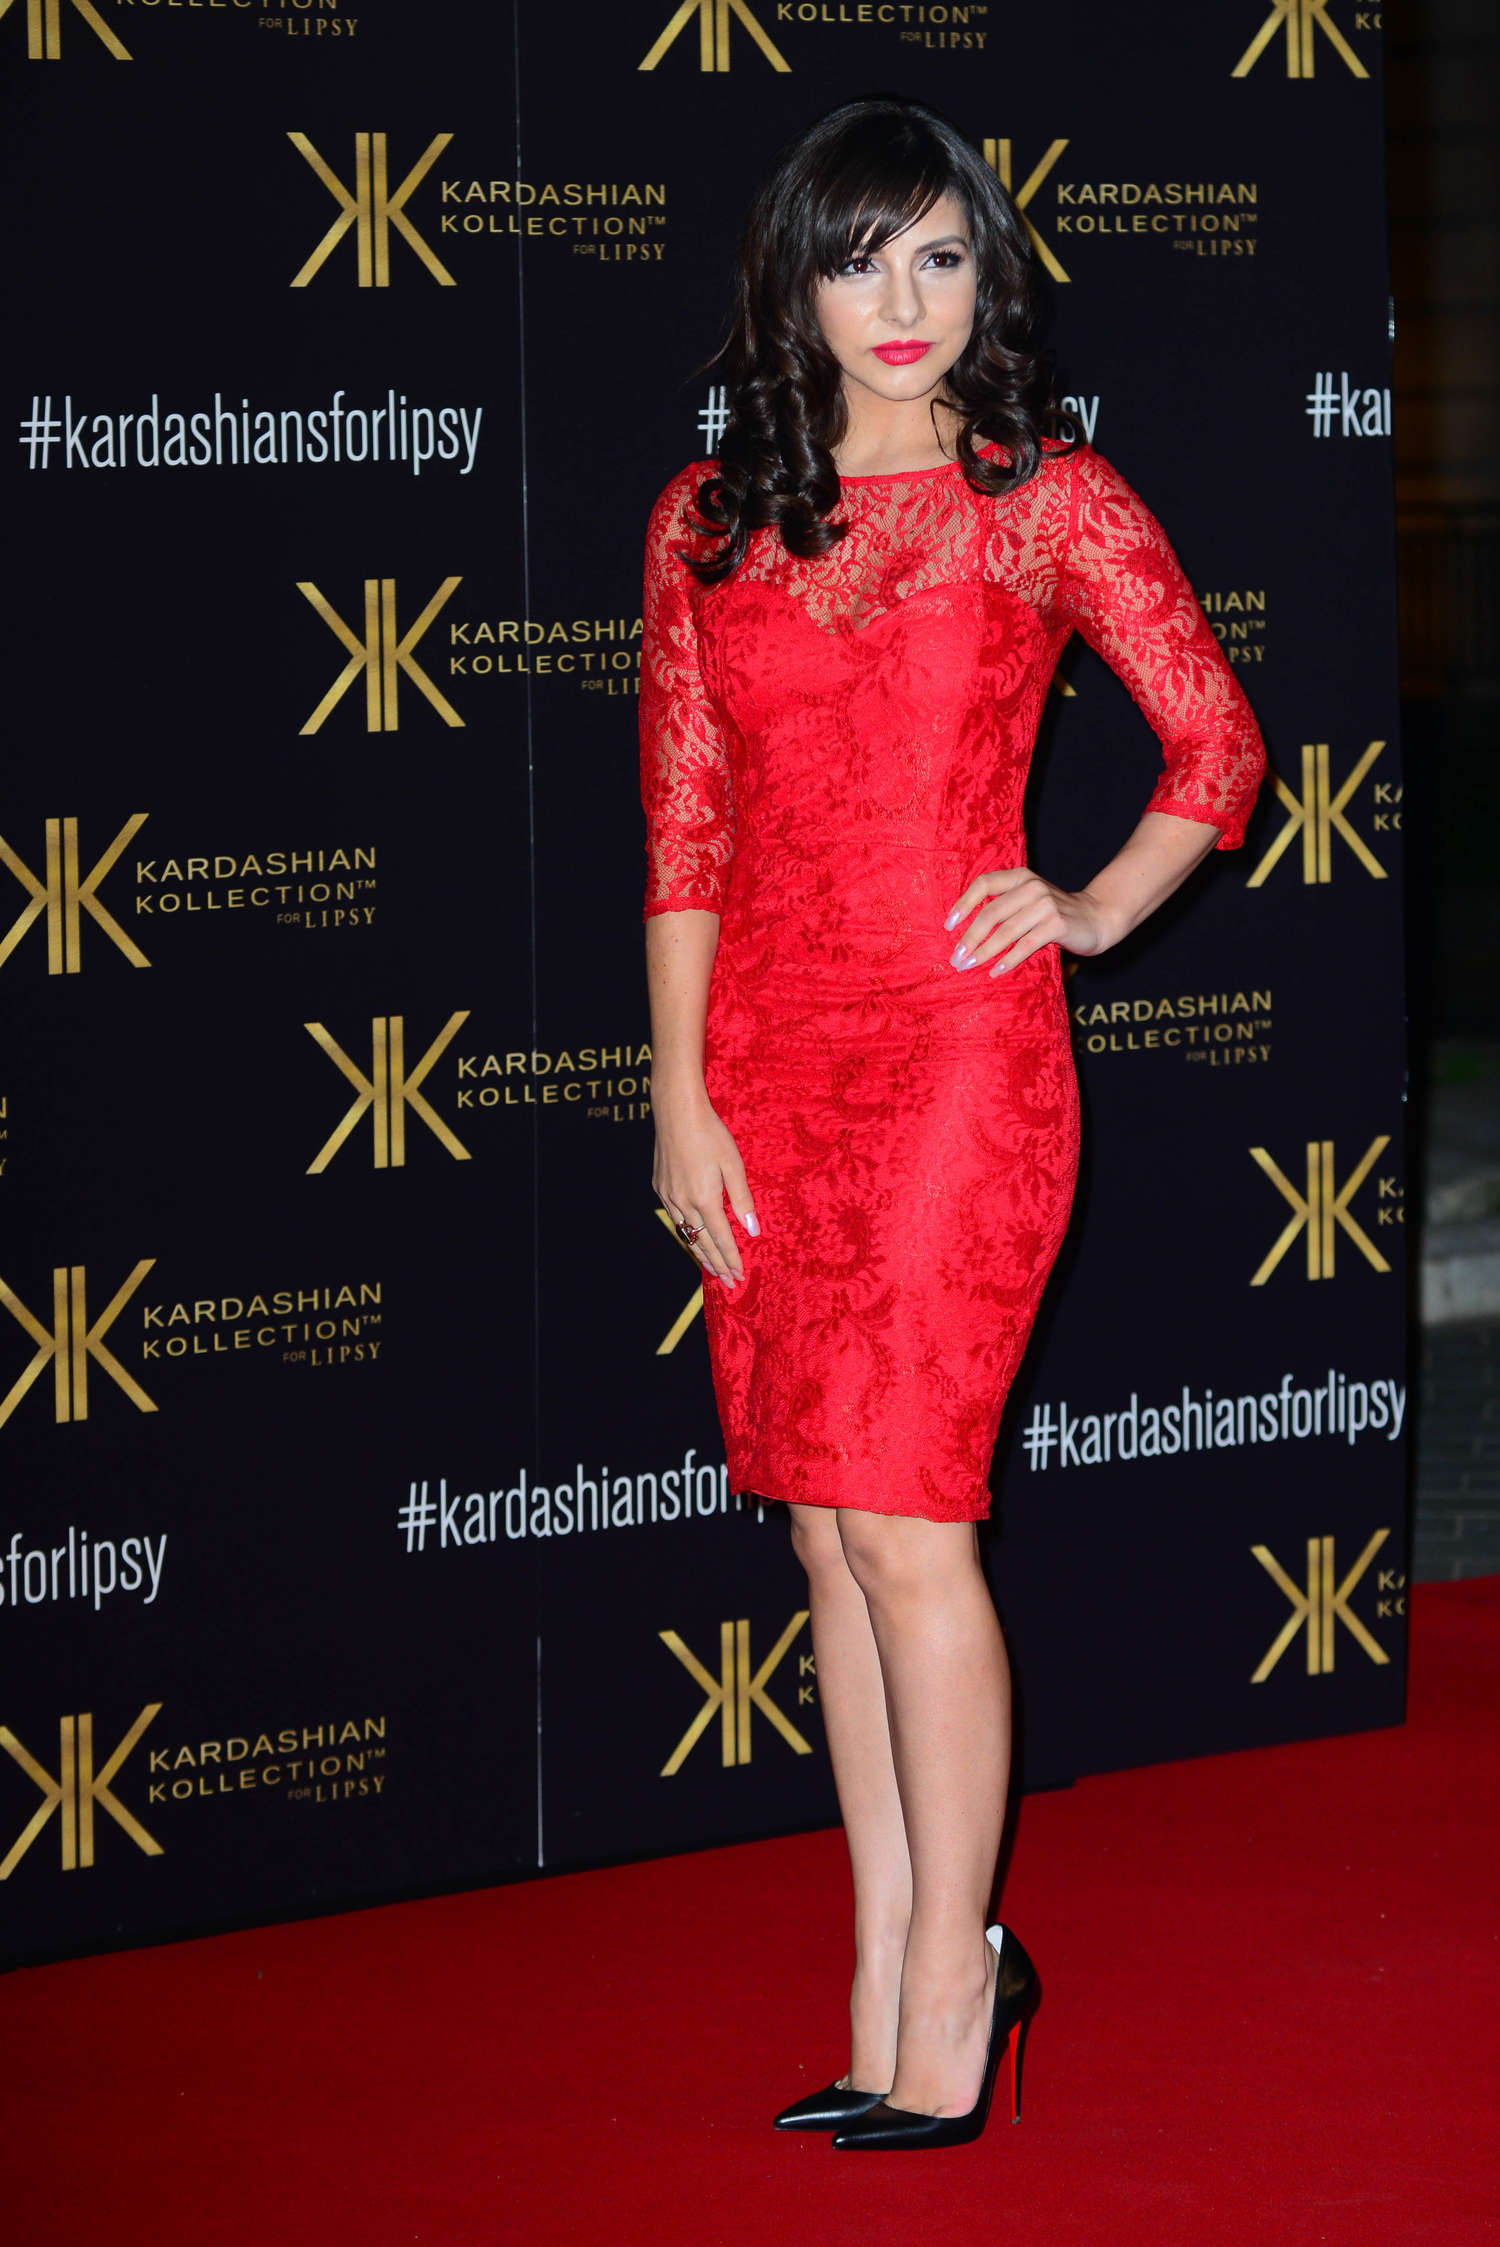 Roxanne Pallett Kardashian Kollection for Lipsy launch party in London